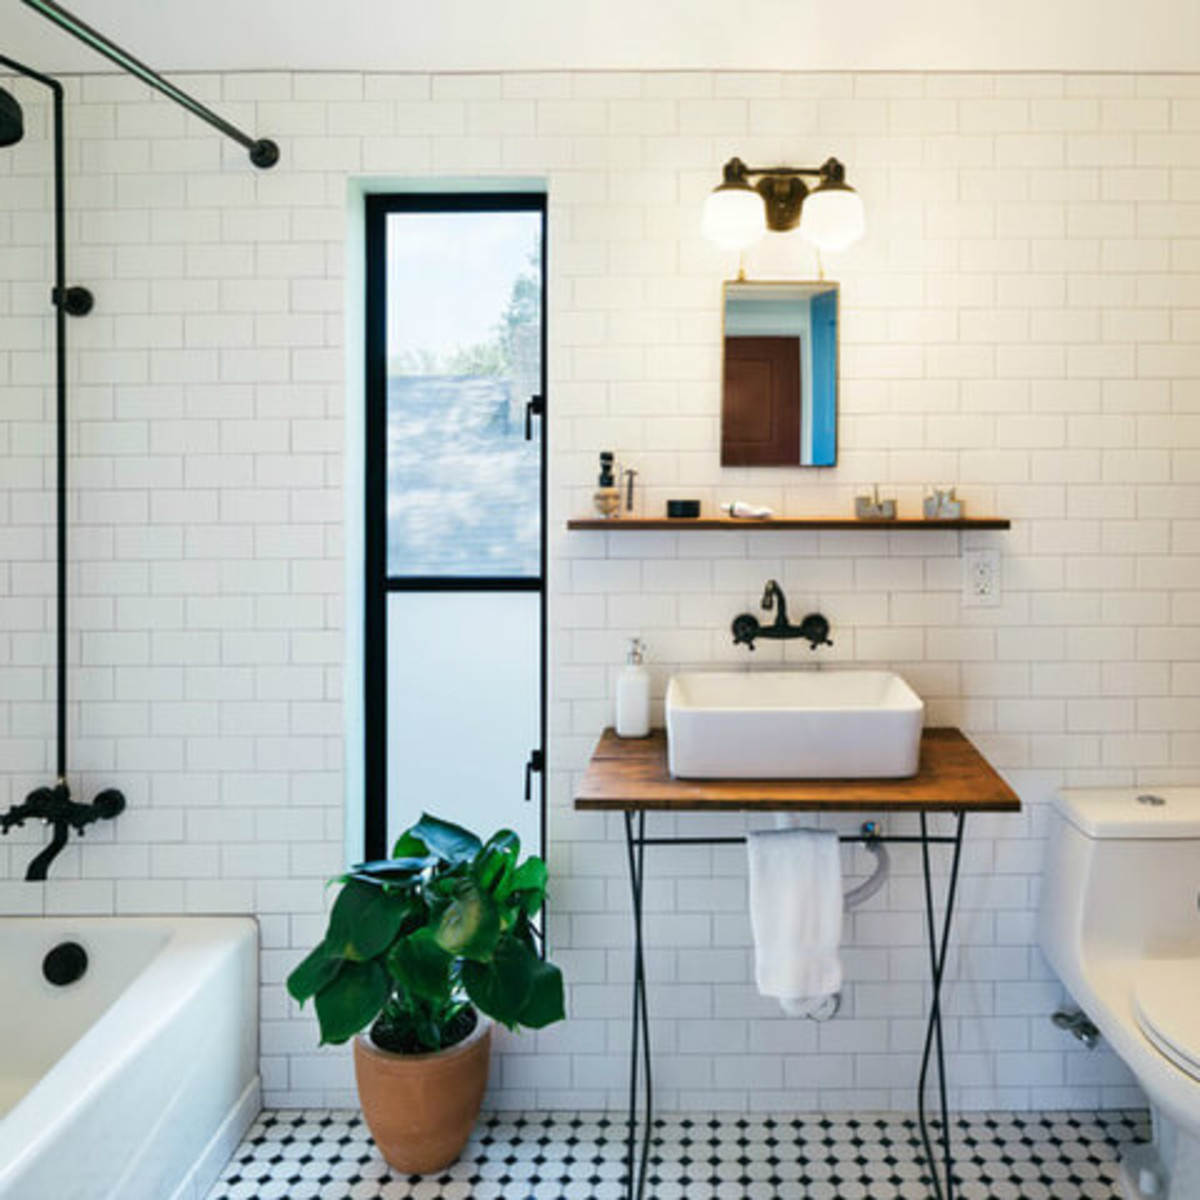 Austin home house Houzz DIY modern Texas farmhouse Garden St bathroom